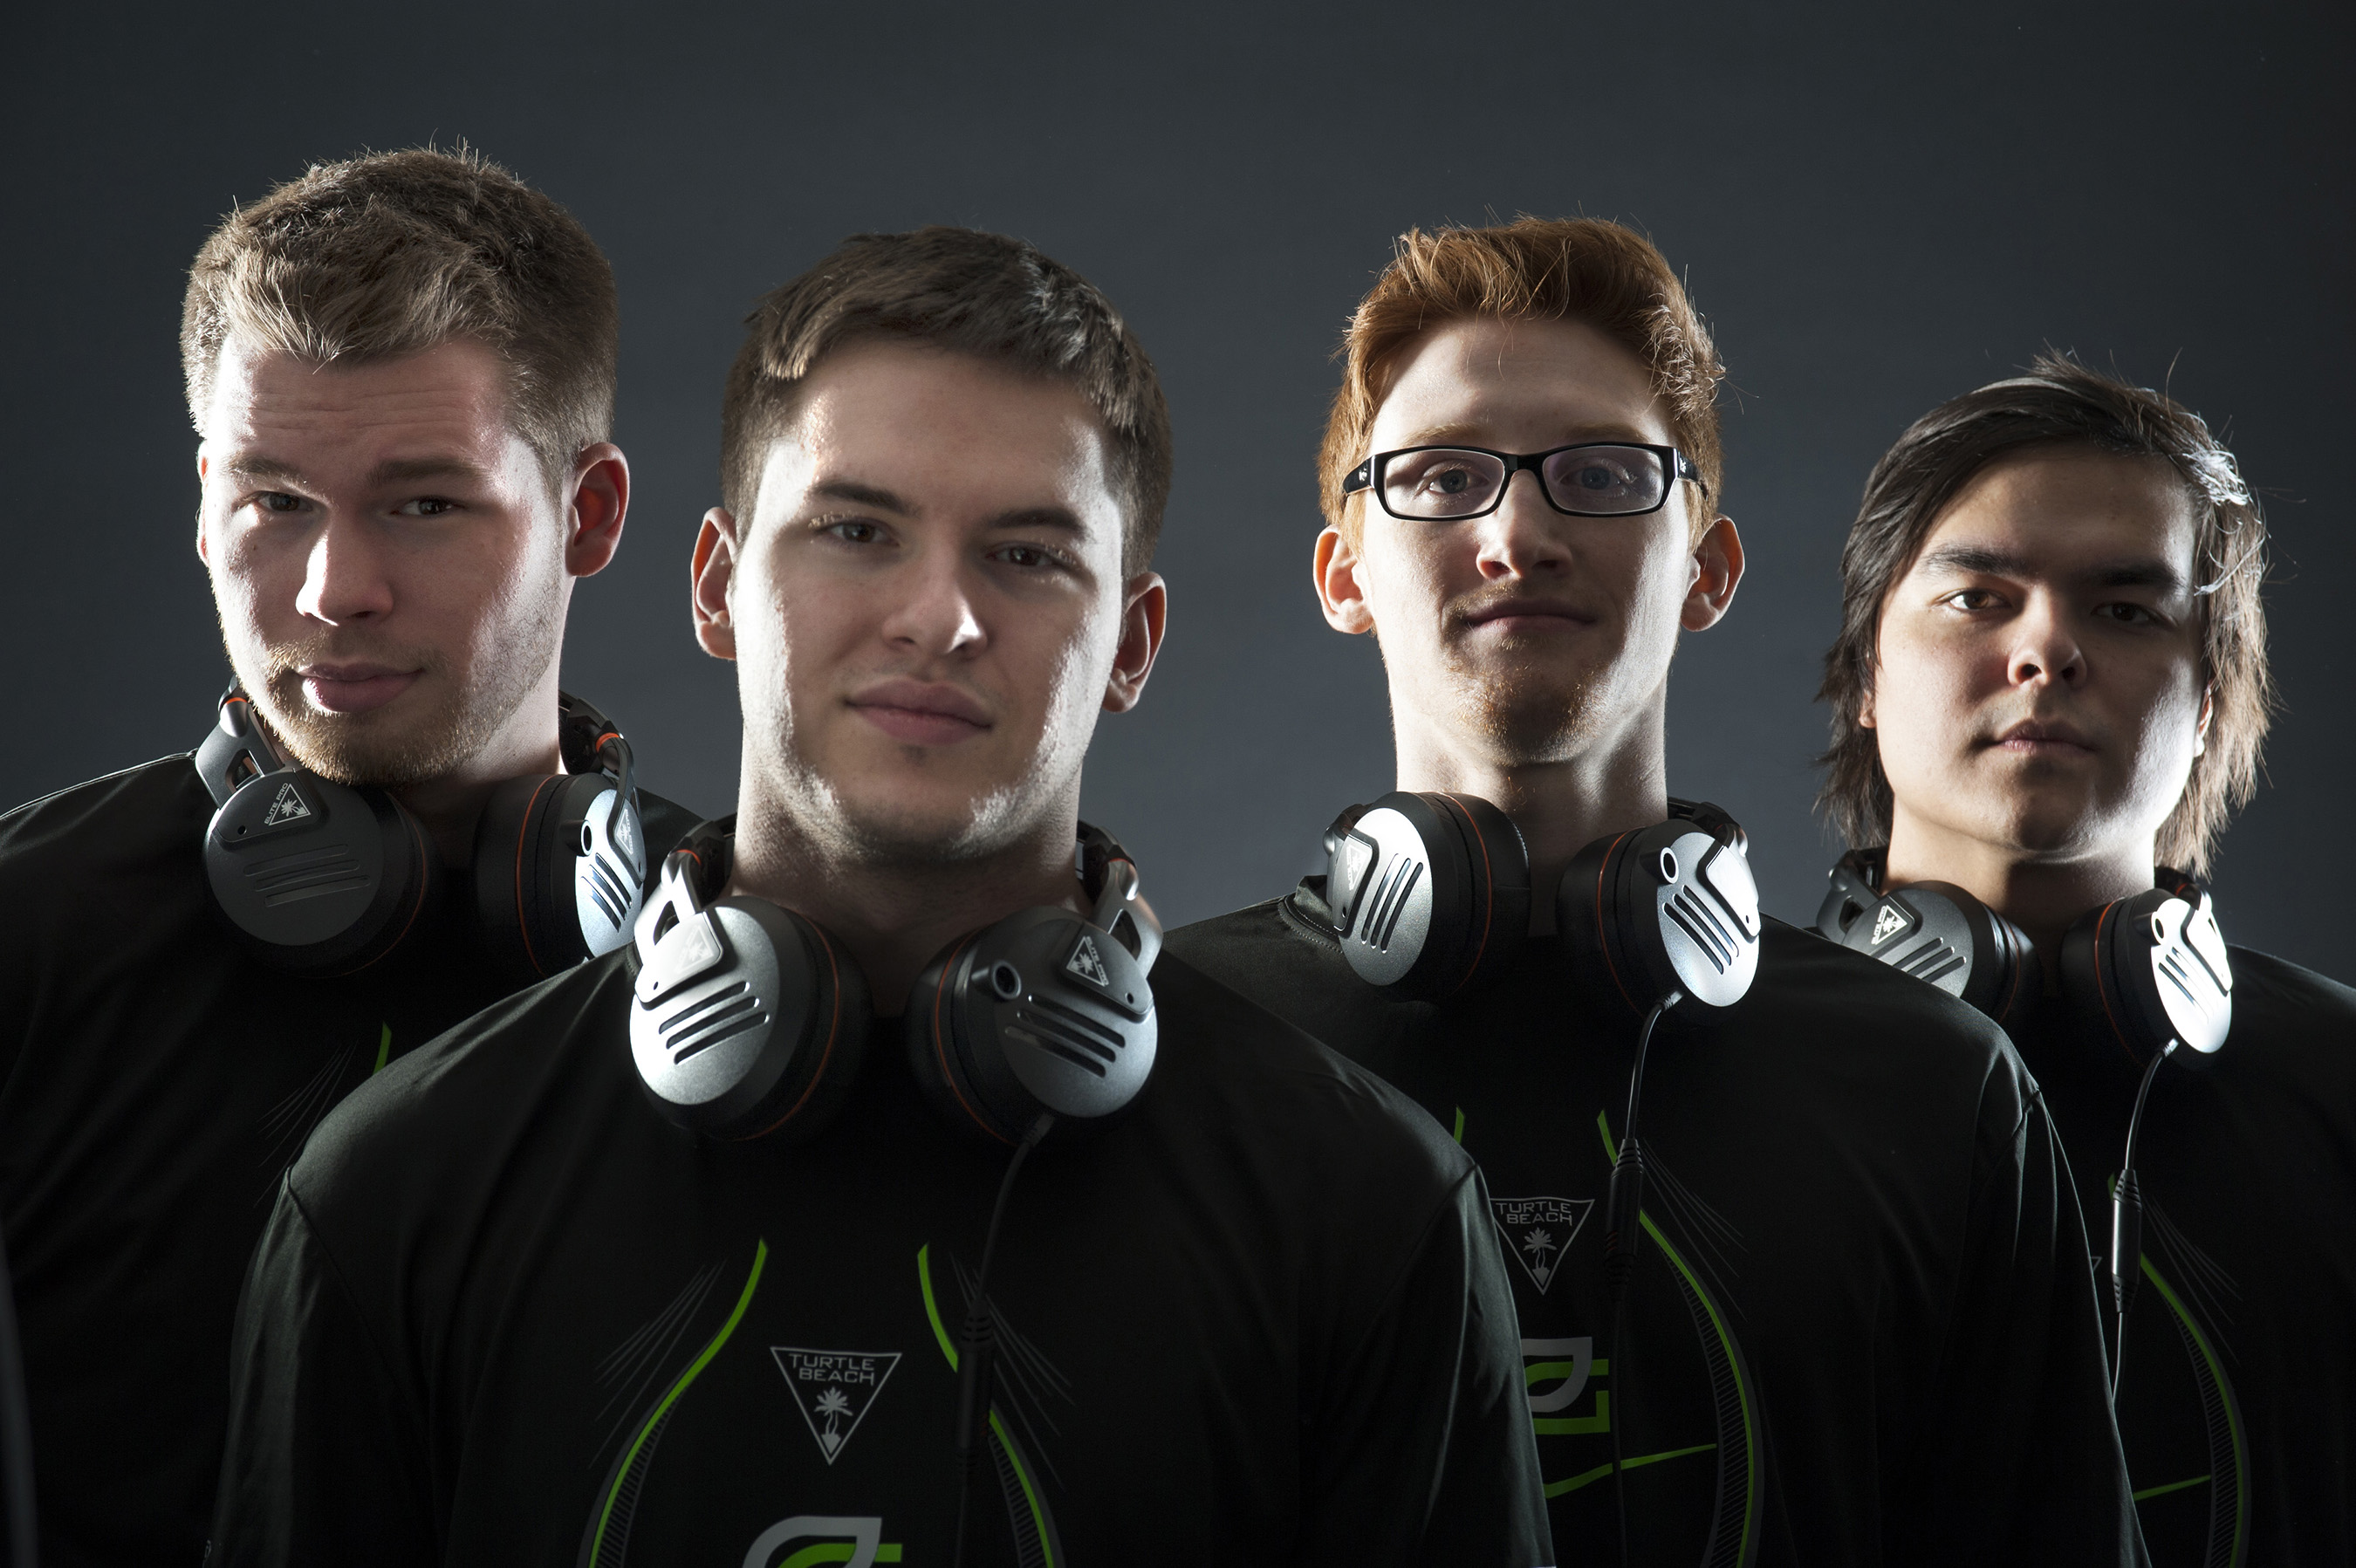 TURTLE BEACH REINVENTS ESPORTS GAMING HEADSETS WITH THE